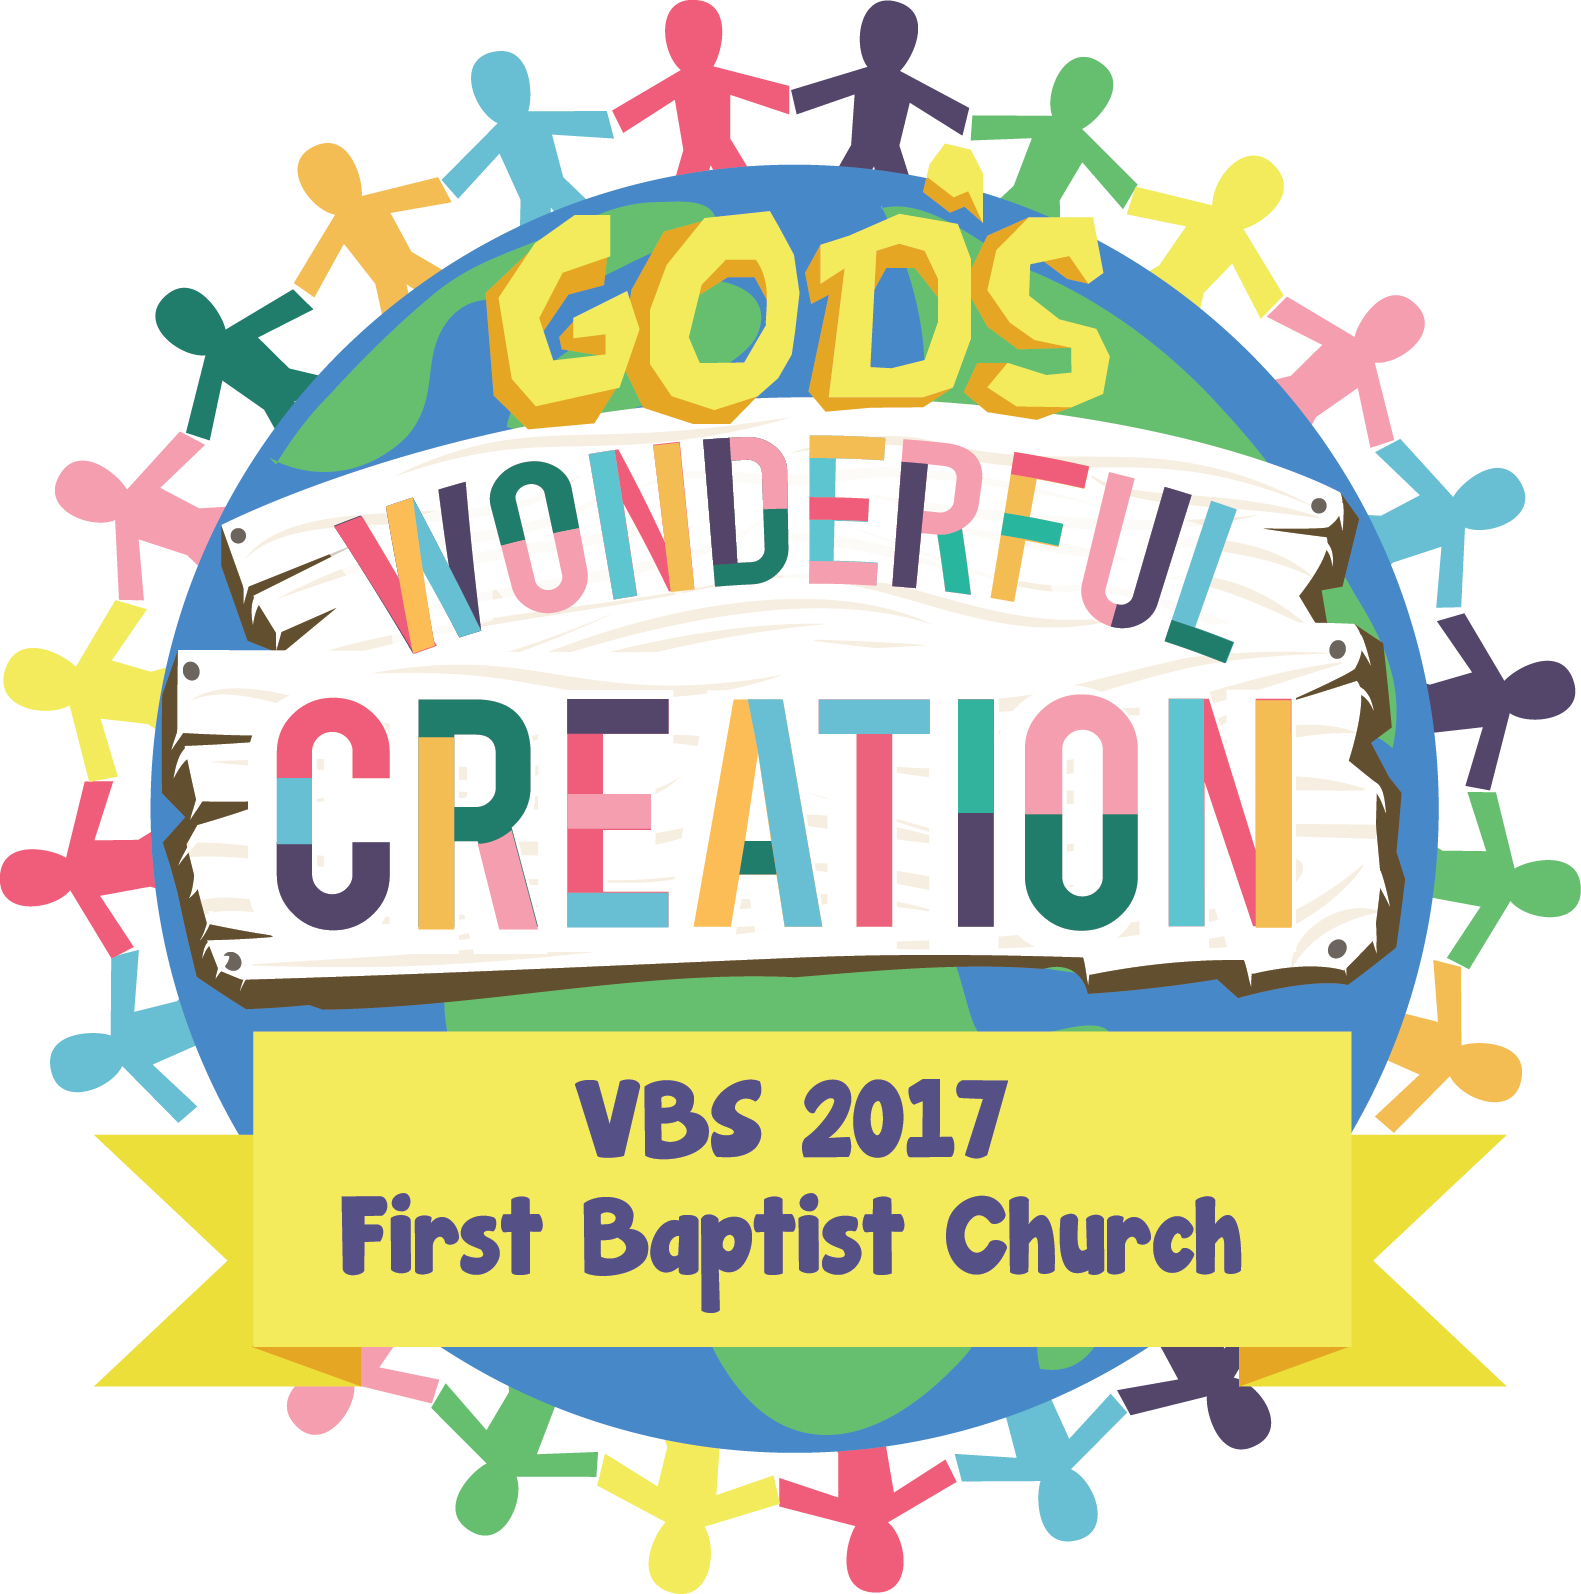 Clipart vacation bible school royalty free download VACATION BIBLE SCHOOL – First Baptist Church royalty free download